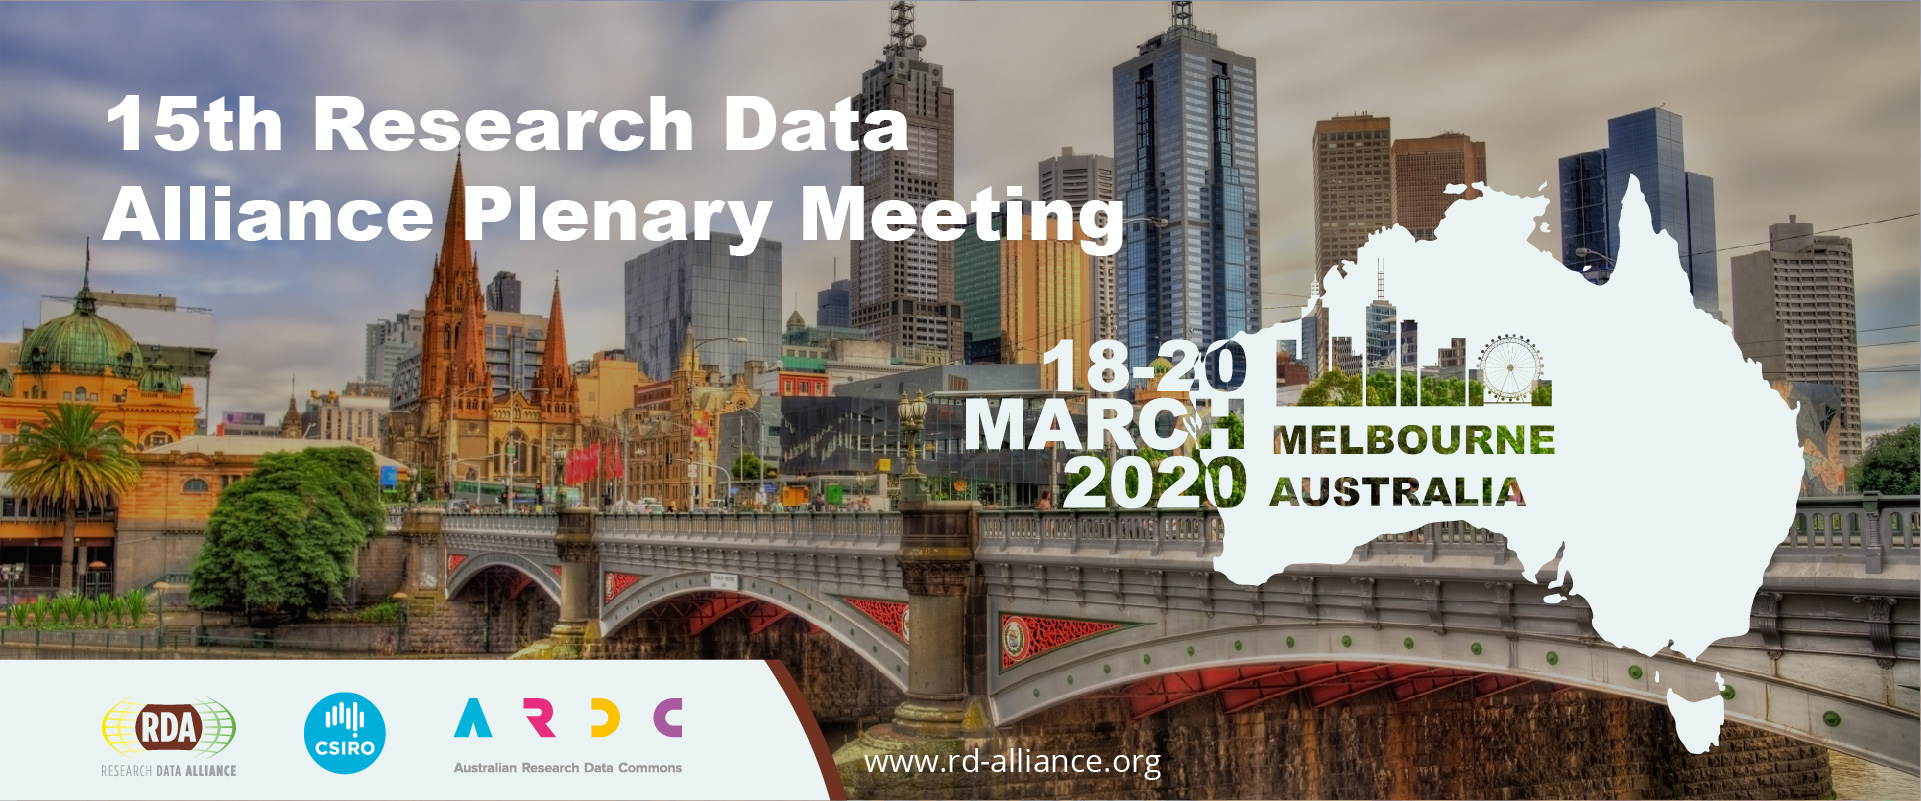 RDA 15th Plenary Meeting, 18-20 March 2020, Melbourne, VIC, Australia